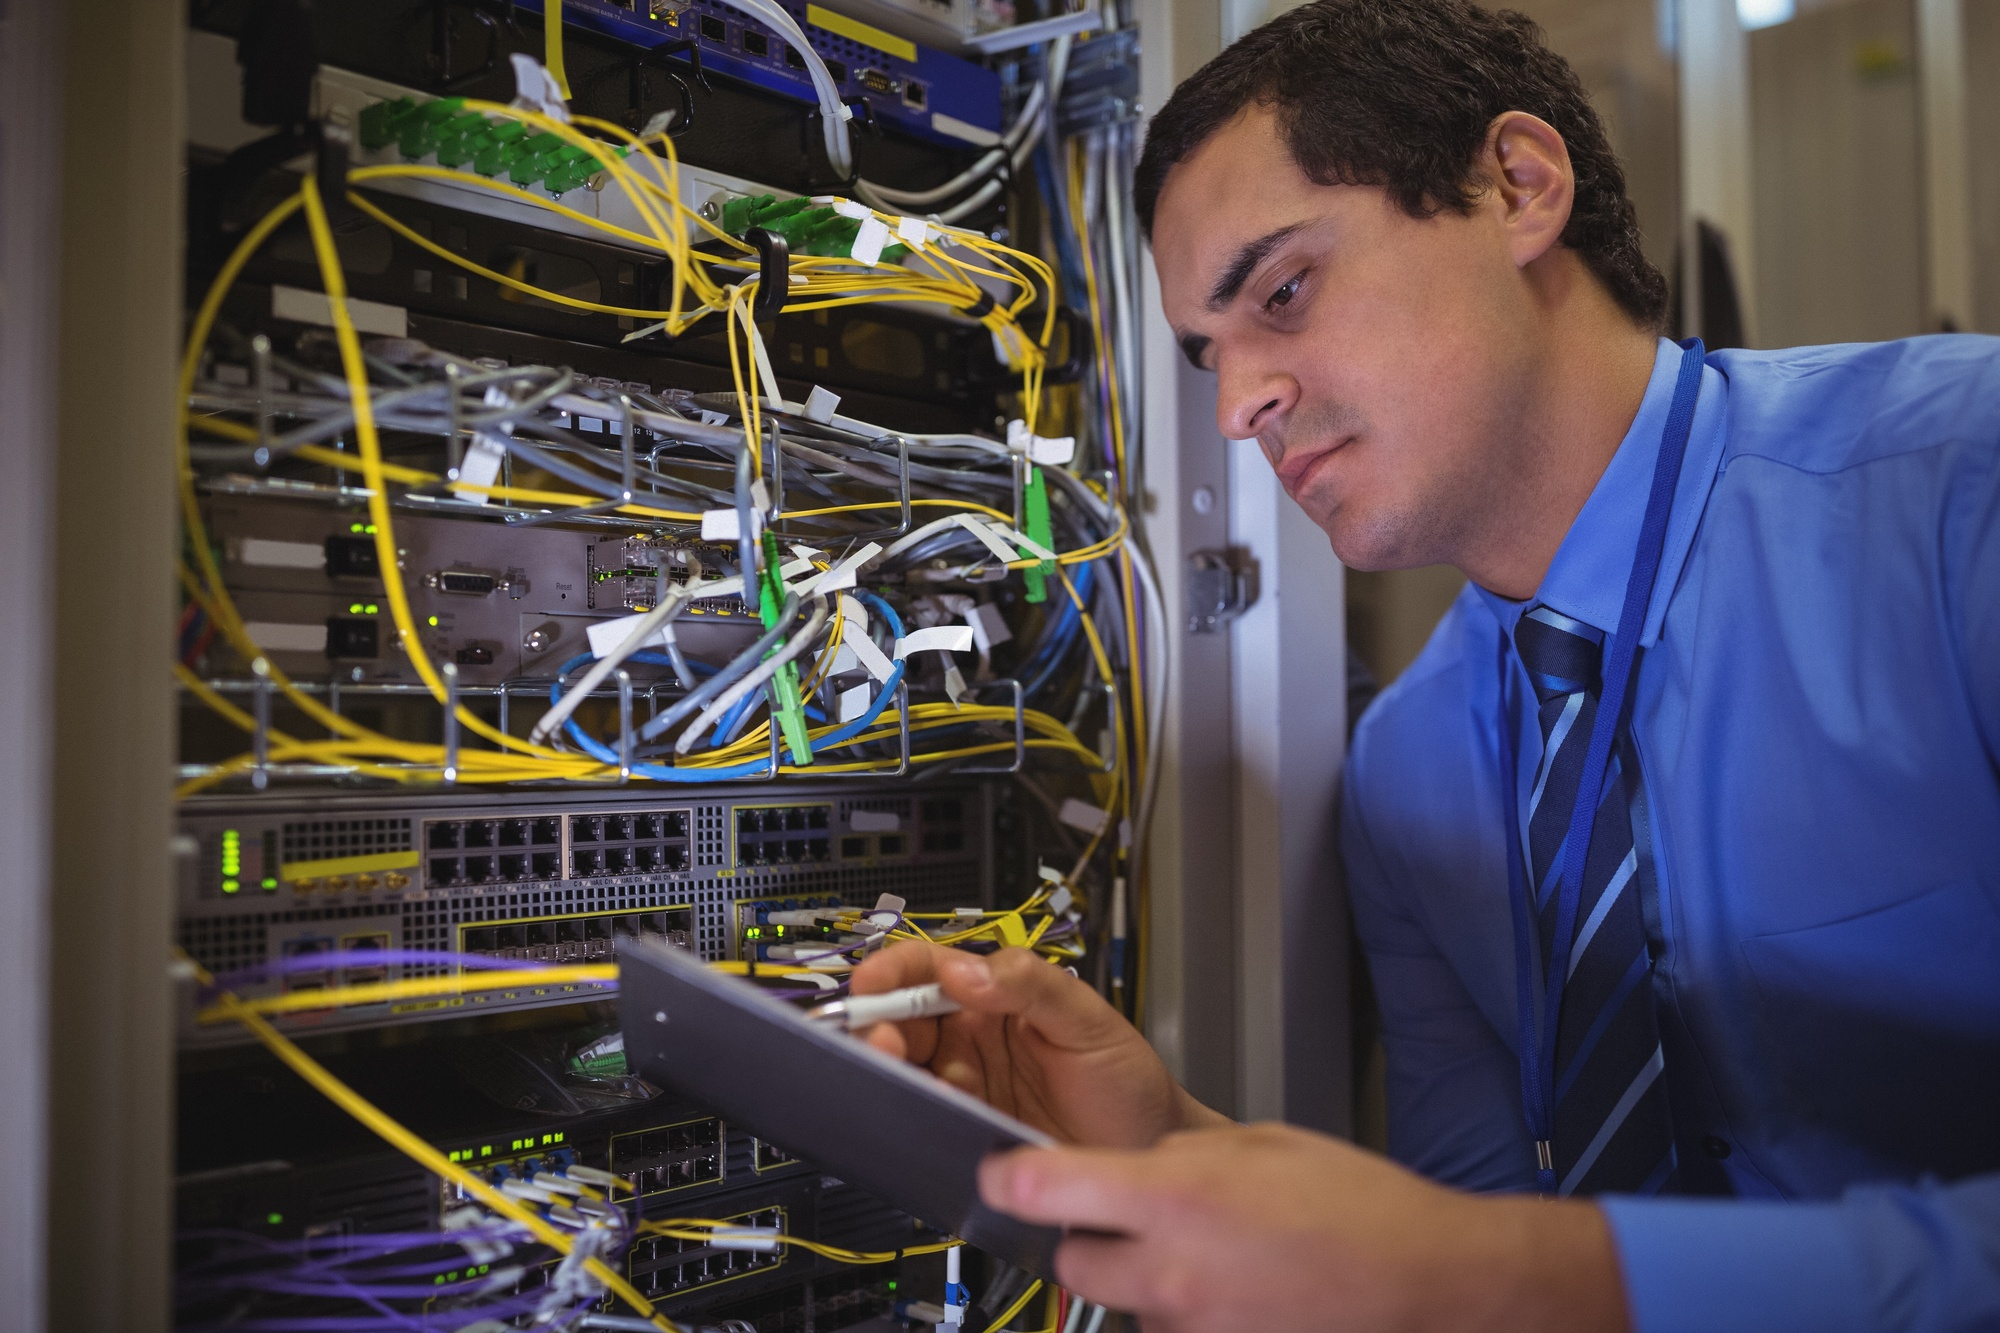 Technician maintaining record of rack